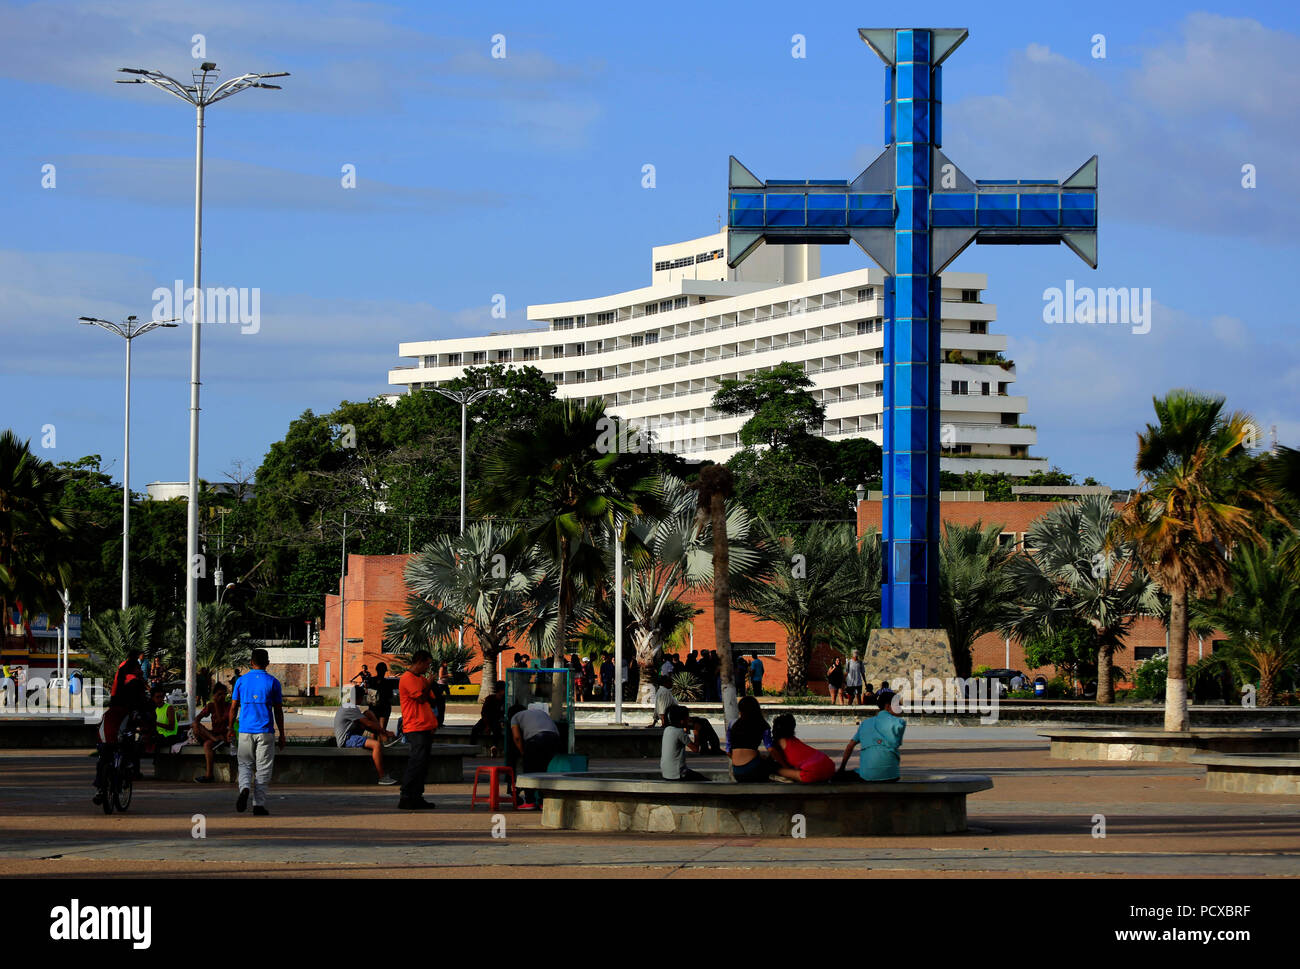 Puerto La Cruz Anzoategui Venezuela 3rd Aug 2018 August 03 2018 Cross Of The Paseo Col